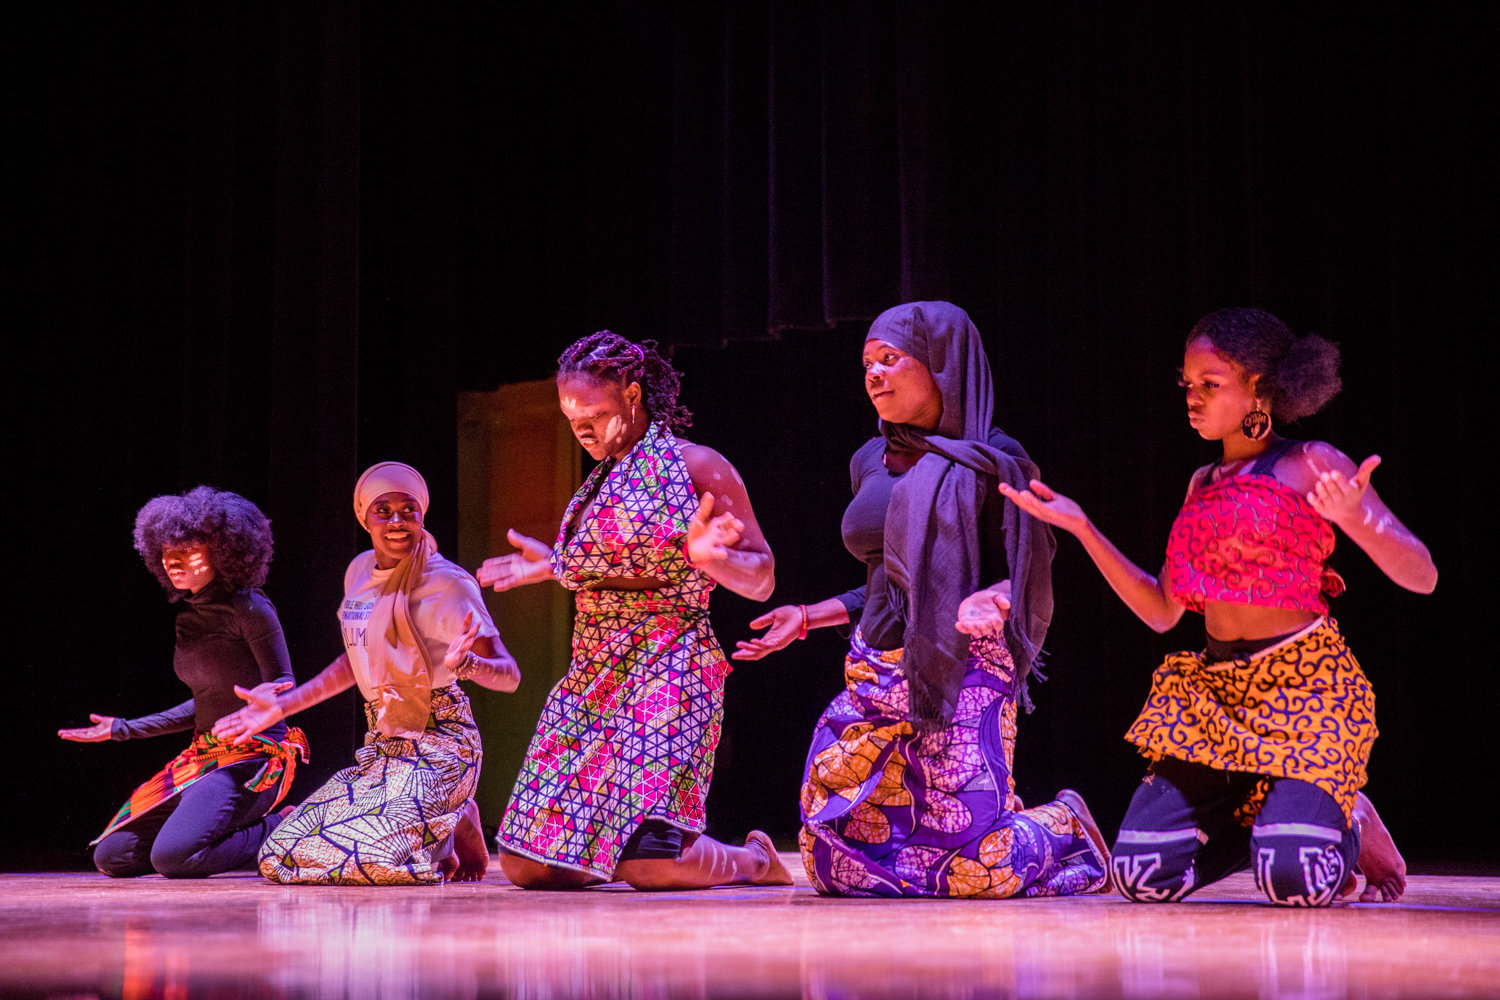 Students perform 'African Roots' for the Marble Hill School for International Studies' second annual Black History Show, organized by the school's new Black Student Union.